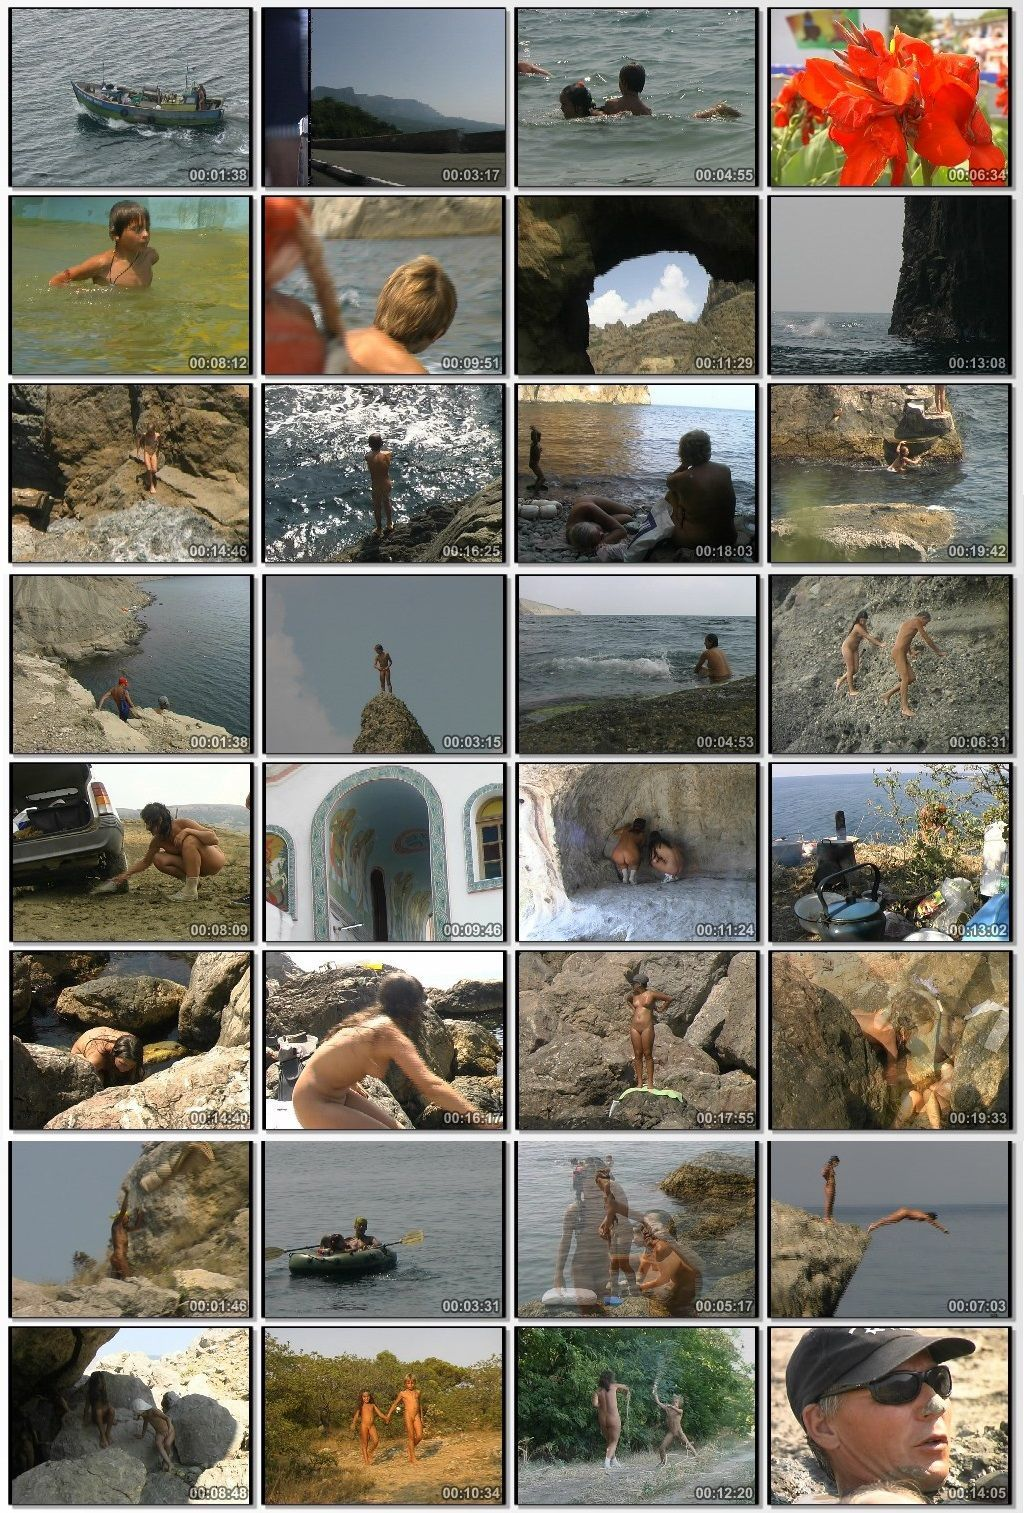 Families nudists in Crimea land of sea and mountains